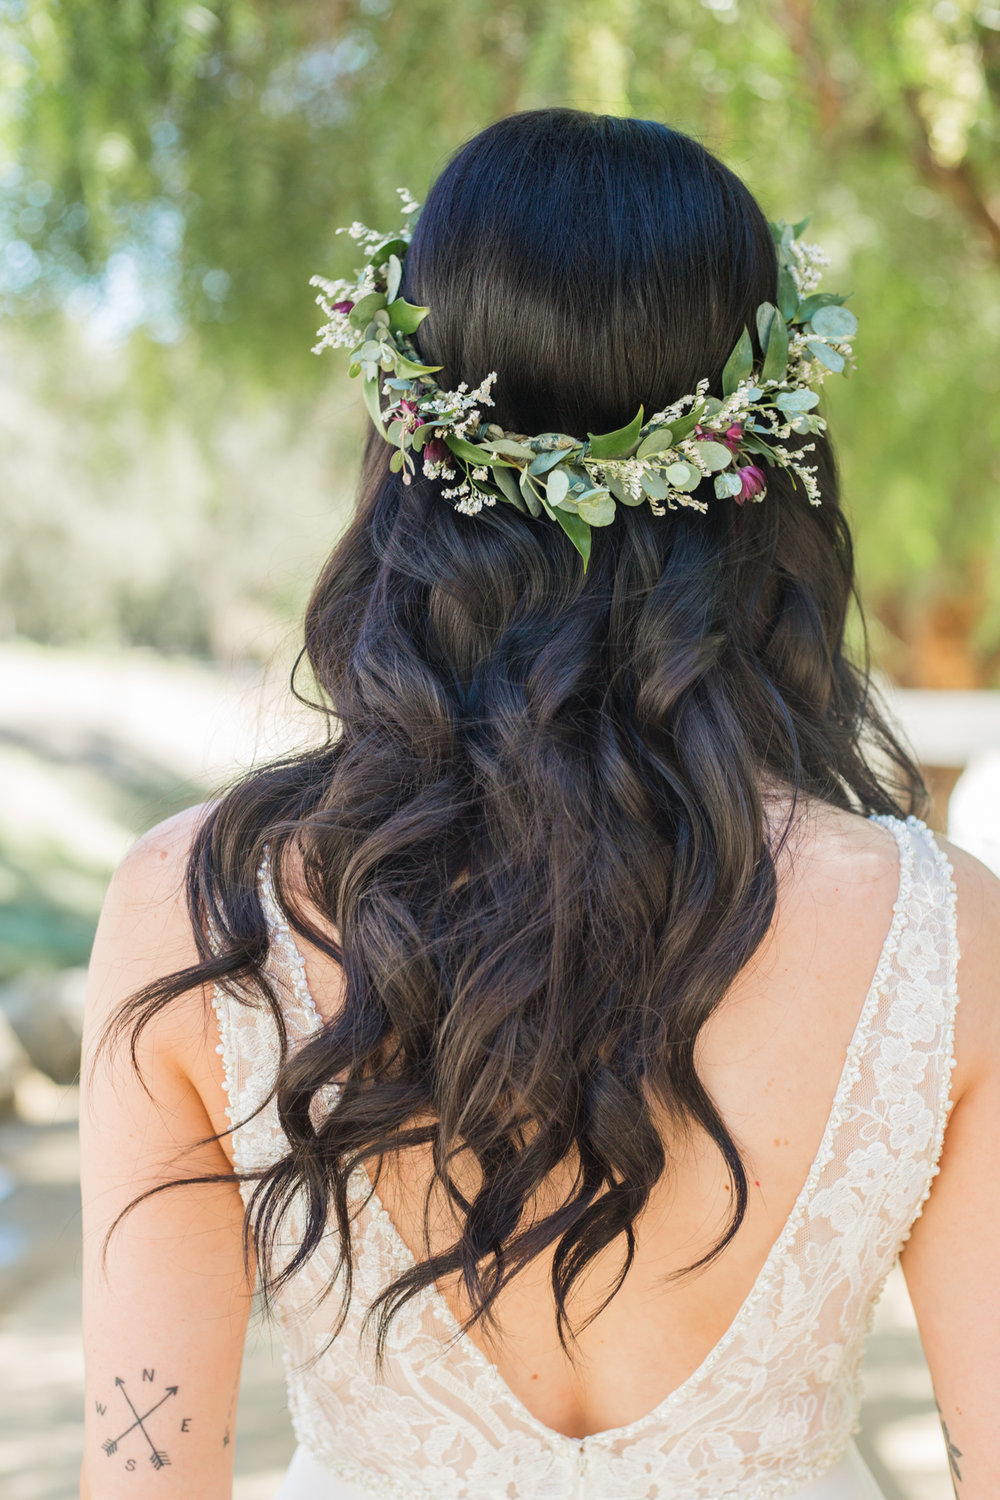 Rustic flower crown for boho bride